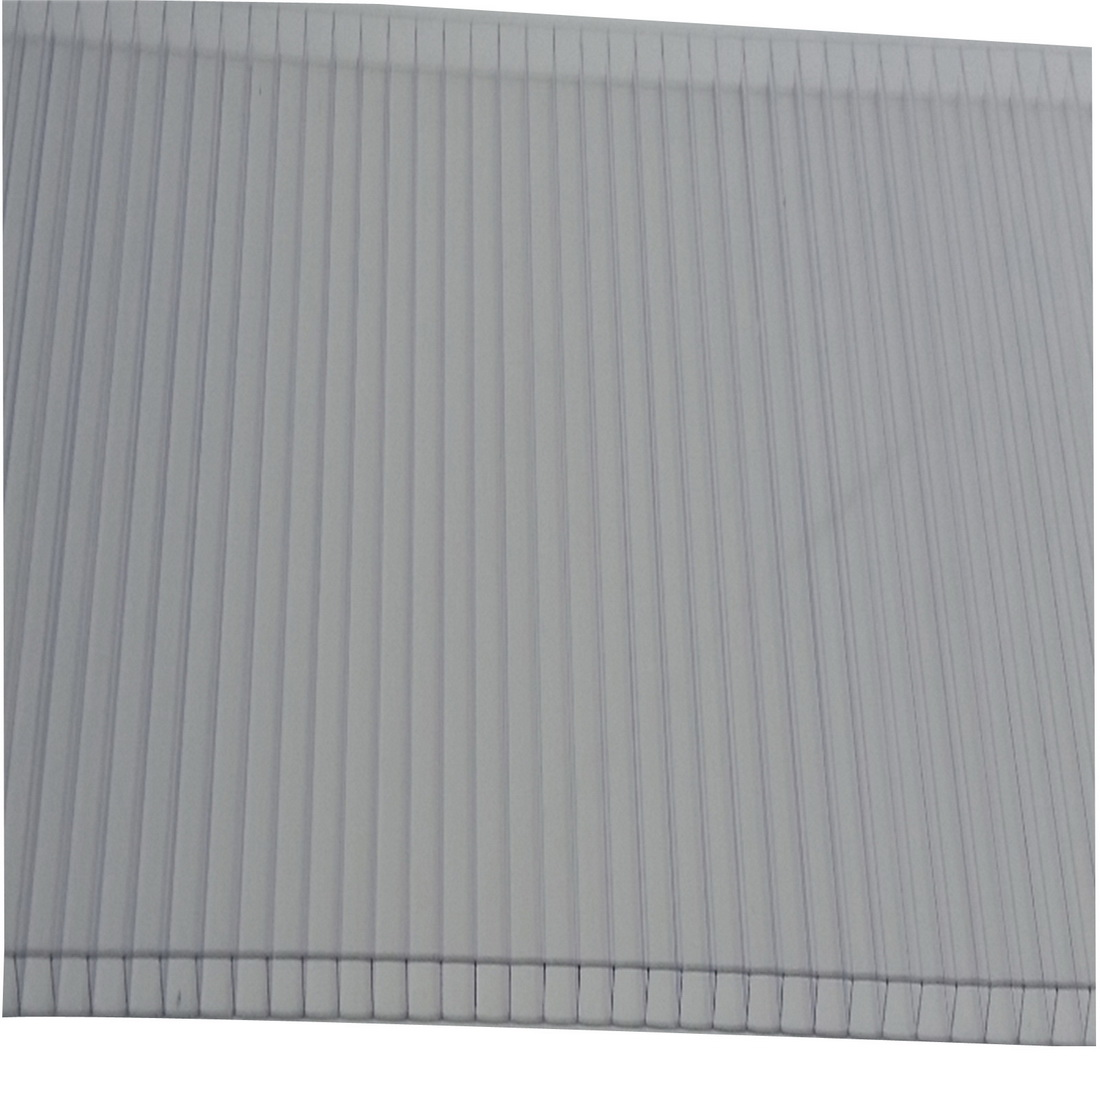 Twinwall Fluted Roofing 3000 x 1220 x 8mm Polycarbonate Clear 9418815042954